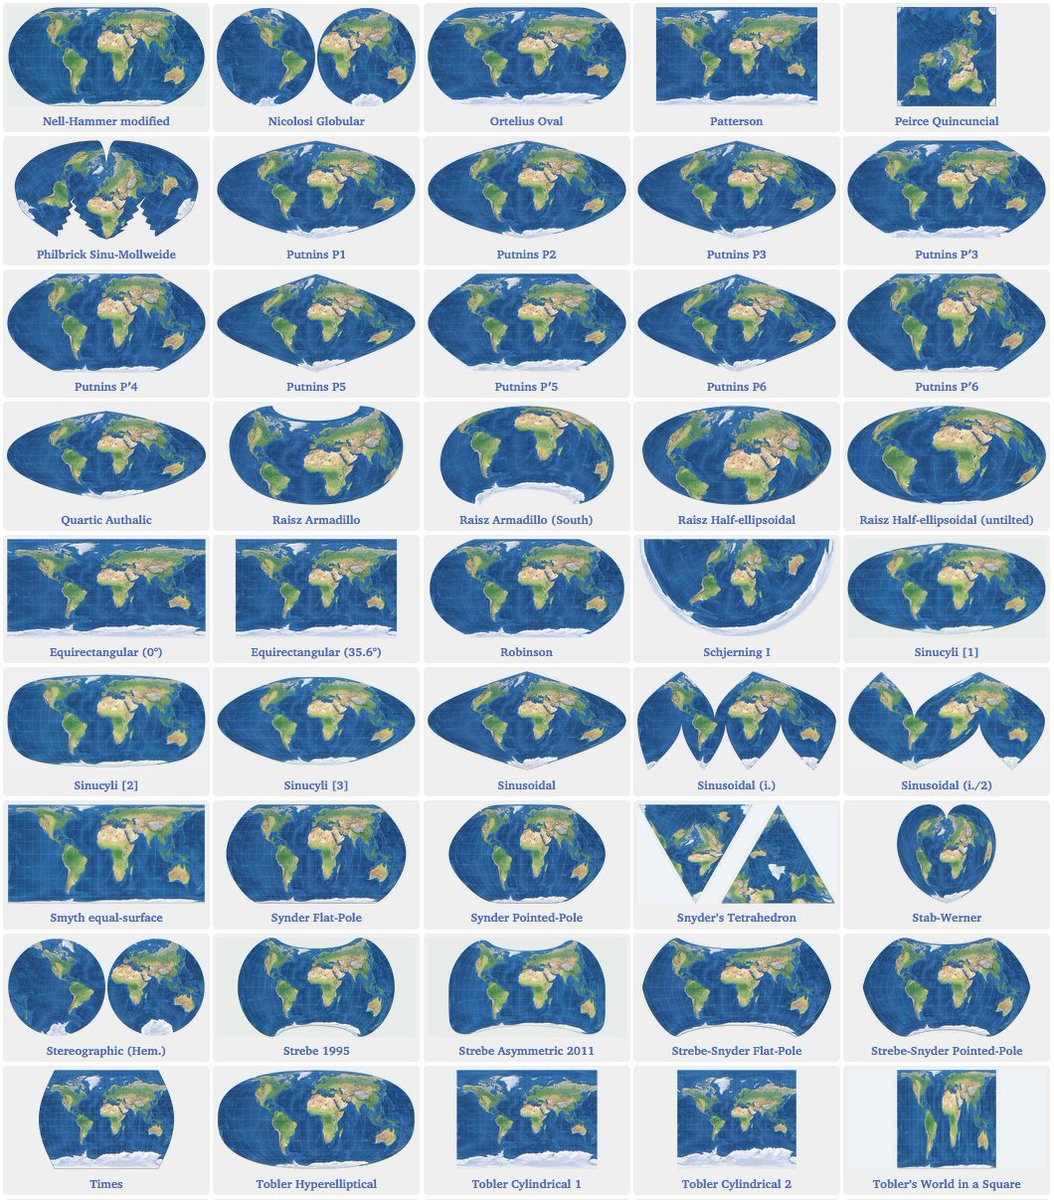 Bunch of Basic Earth Projections in comparison  http:// bit.ly/2vTYMPU  &nbsp;   Priceless for #cartography fans #DataViz #GIS #CRS<br>http://pic.twitter.com/lD5Lqldwbn